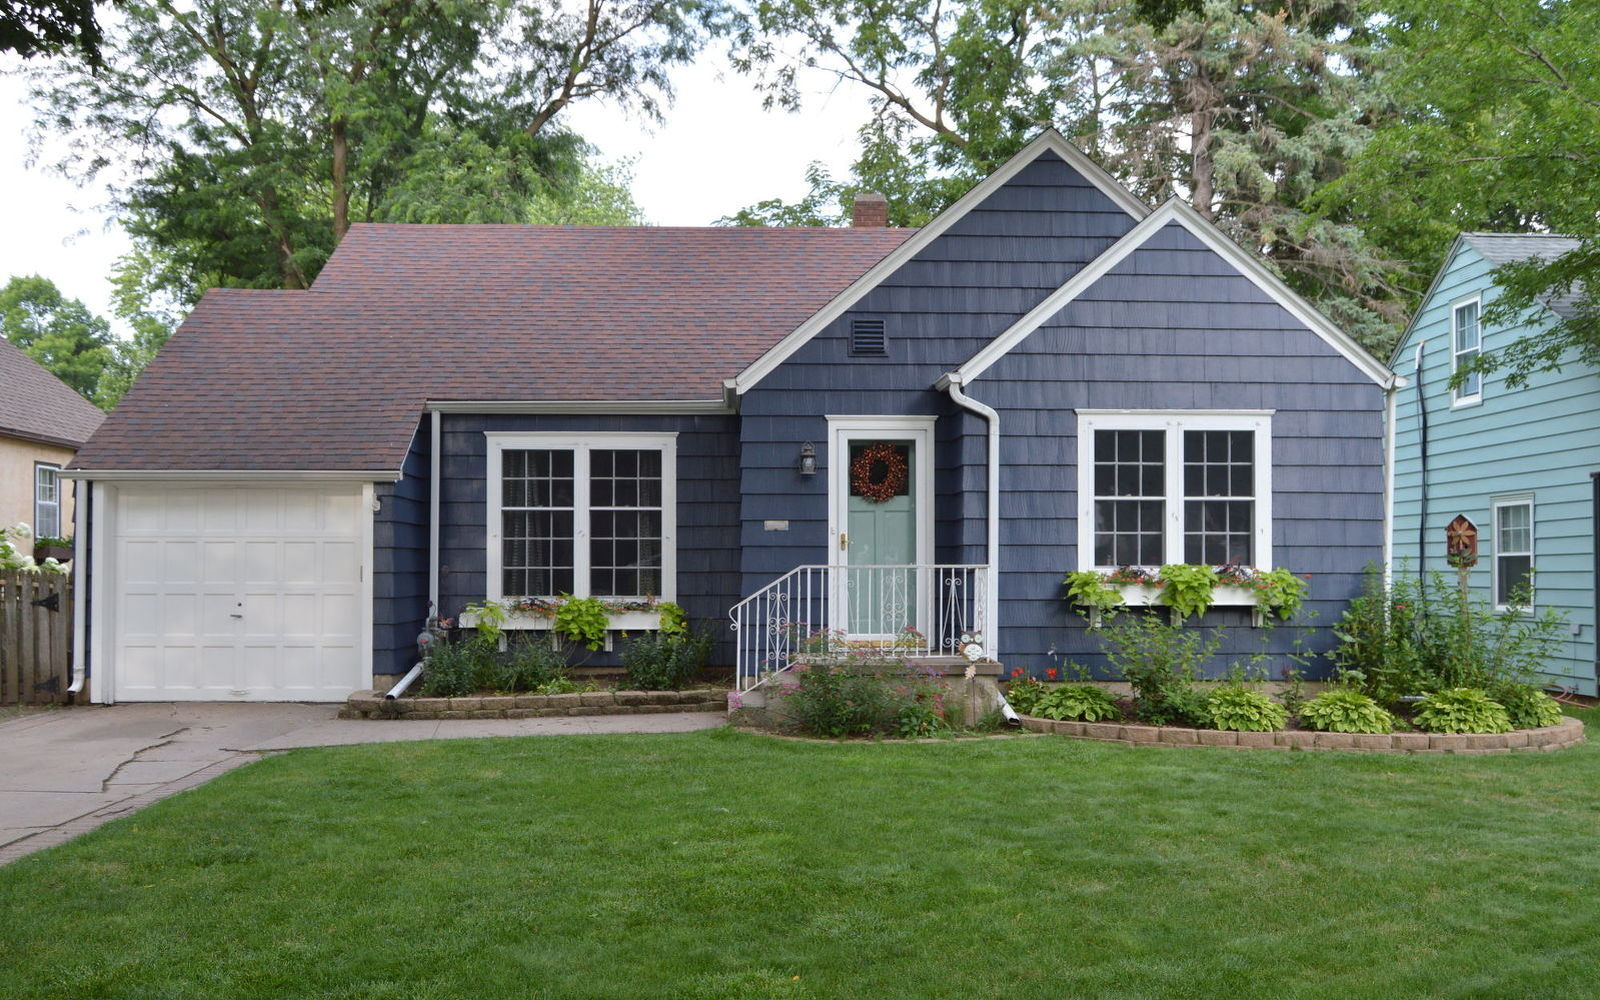 11 quick tricks to whip your home exterior into shape hometalk give your siding a dramatic dark color change